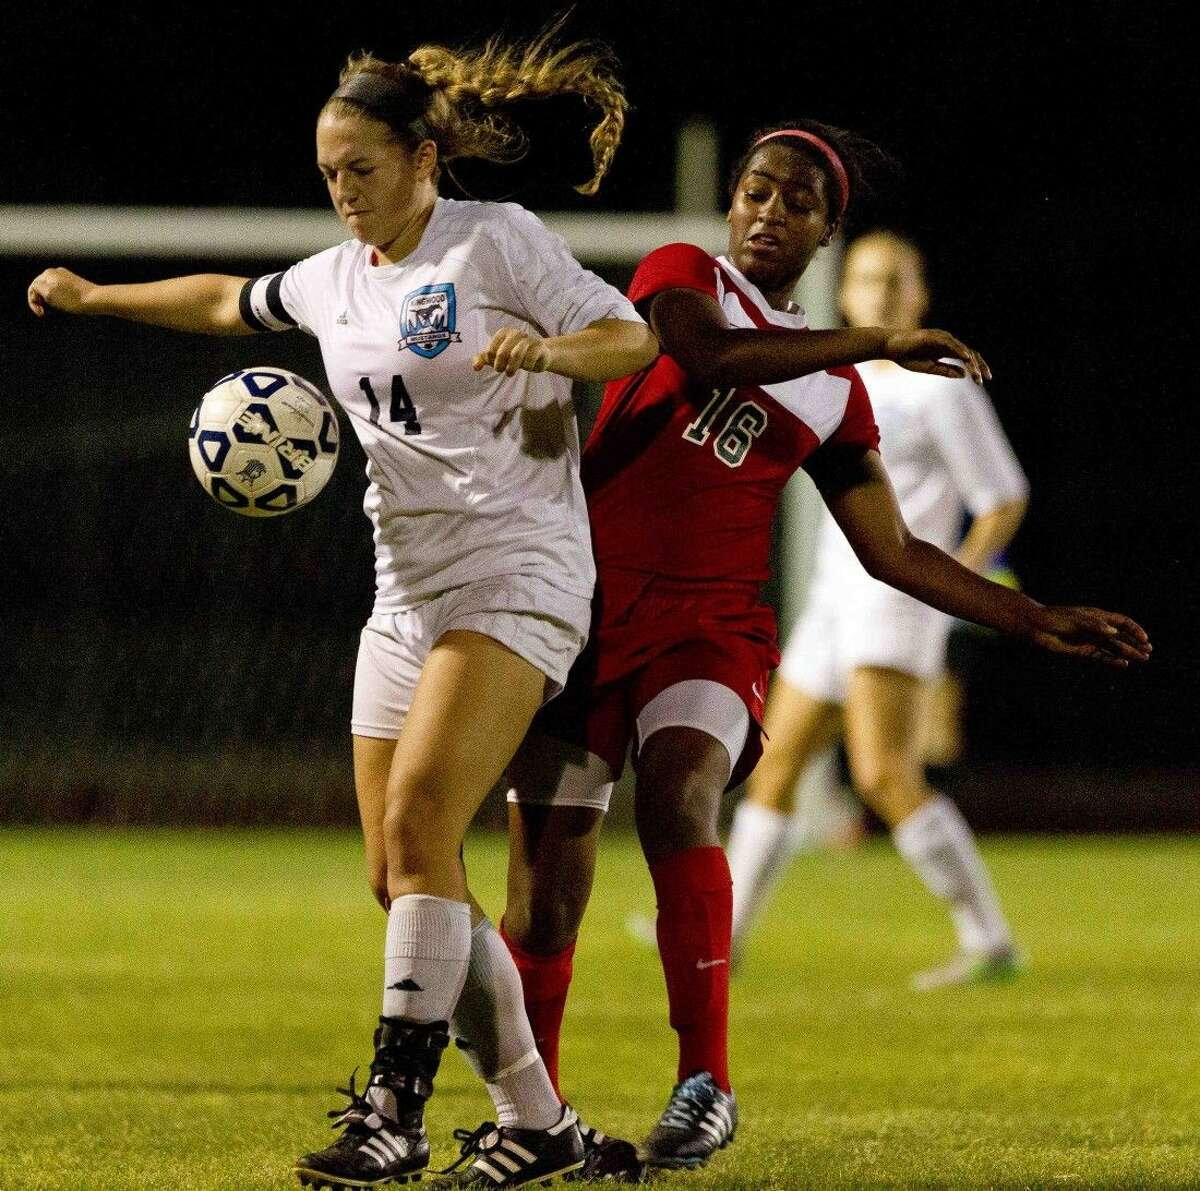 The Woodlands forward Jazzy Richards goes up against Kingwood's Angela Brady during the second period of a District 16-6A girls soccer game at Kingwood High School Friday. The Woodlands defeated Kingwood 3-0. Go to HCNpics.com to purchase this photo and others like it.